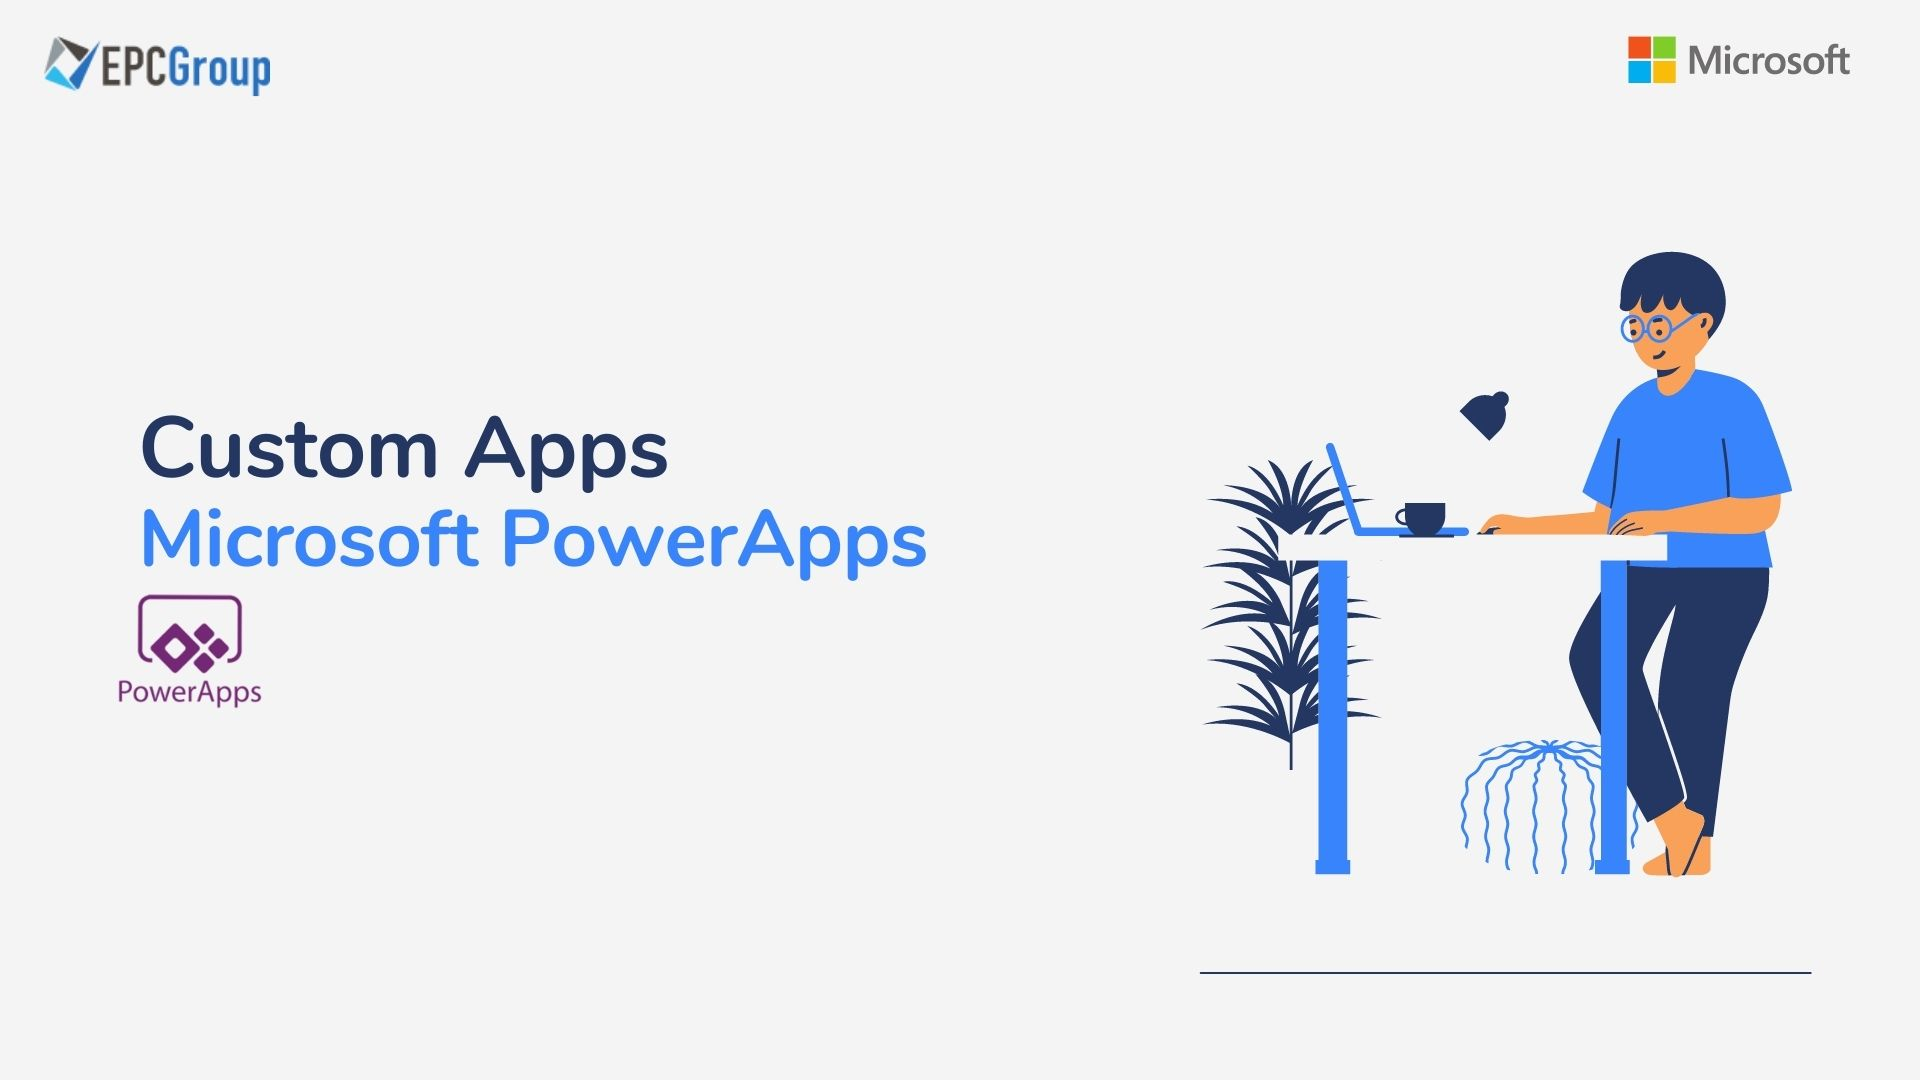 Building Custom Apps for Business Using Microsoft PowerApps - thumb image